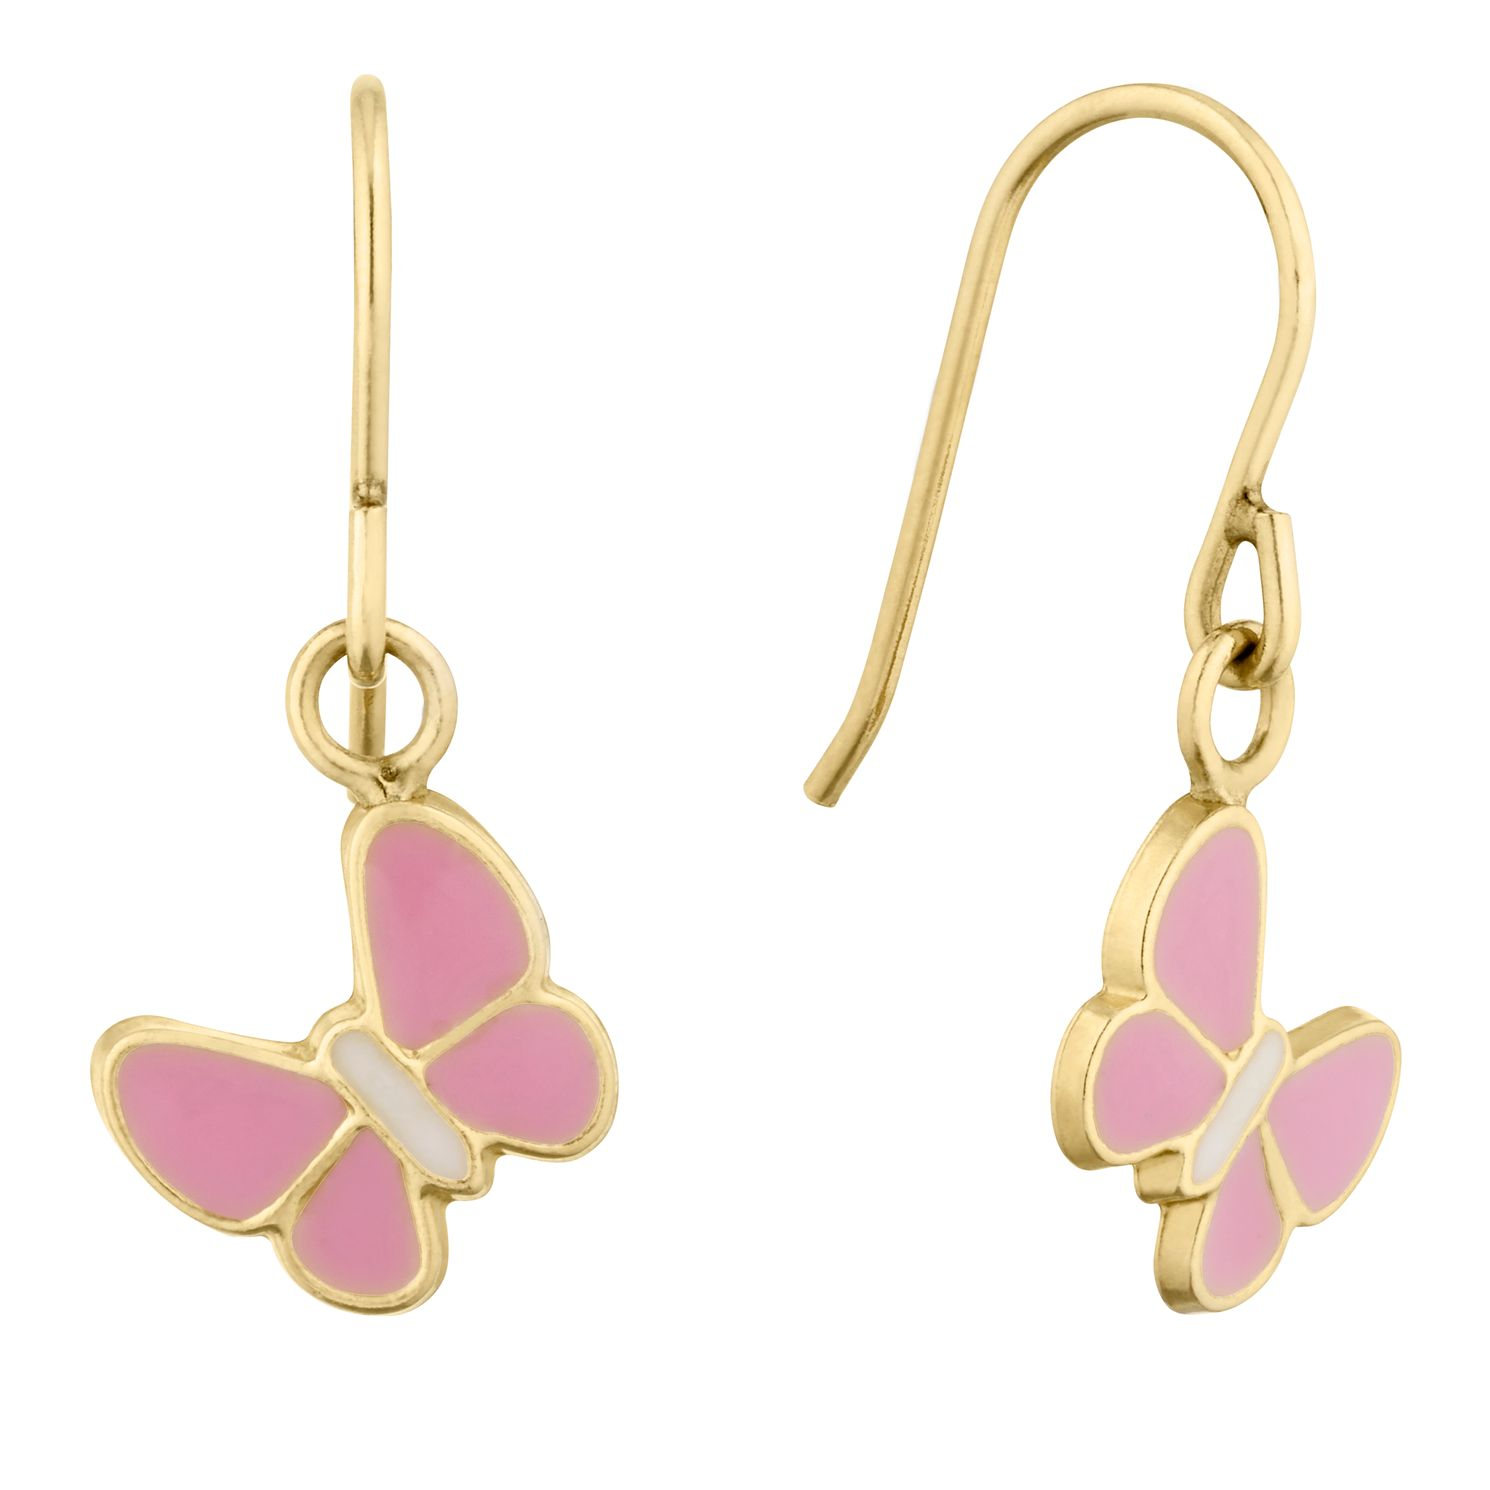 Children's 9ct Yellow Gold Enamel Pink Butterfly Earrings - Product number 9664211